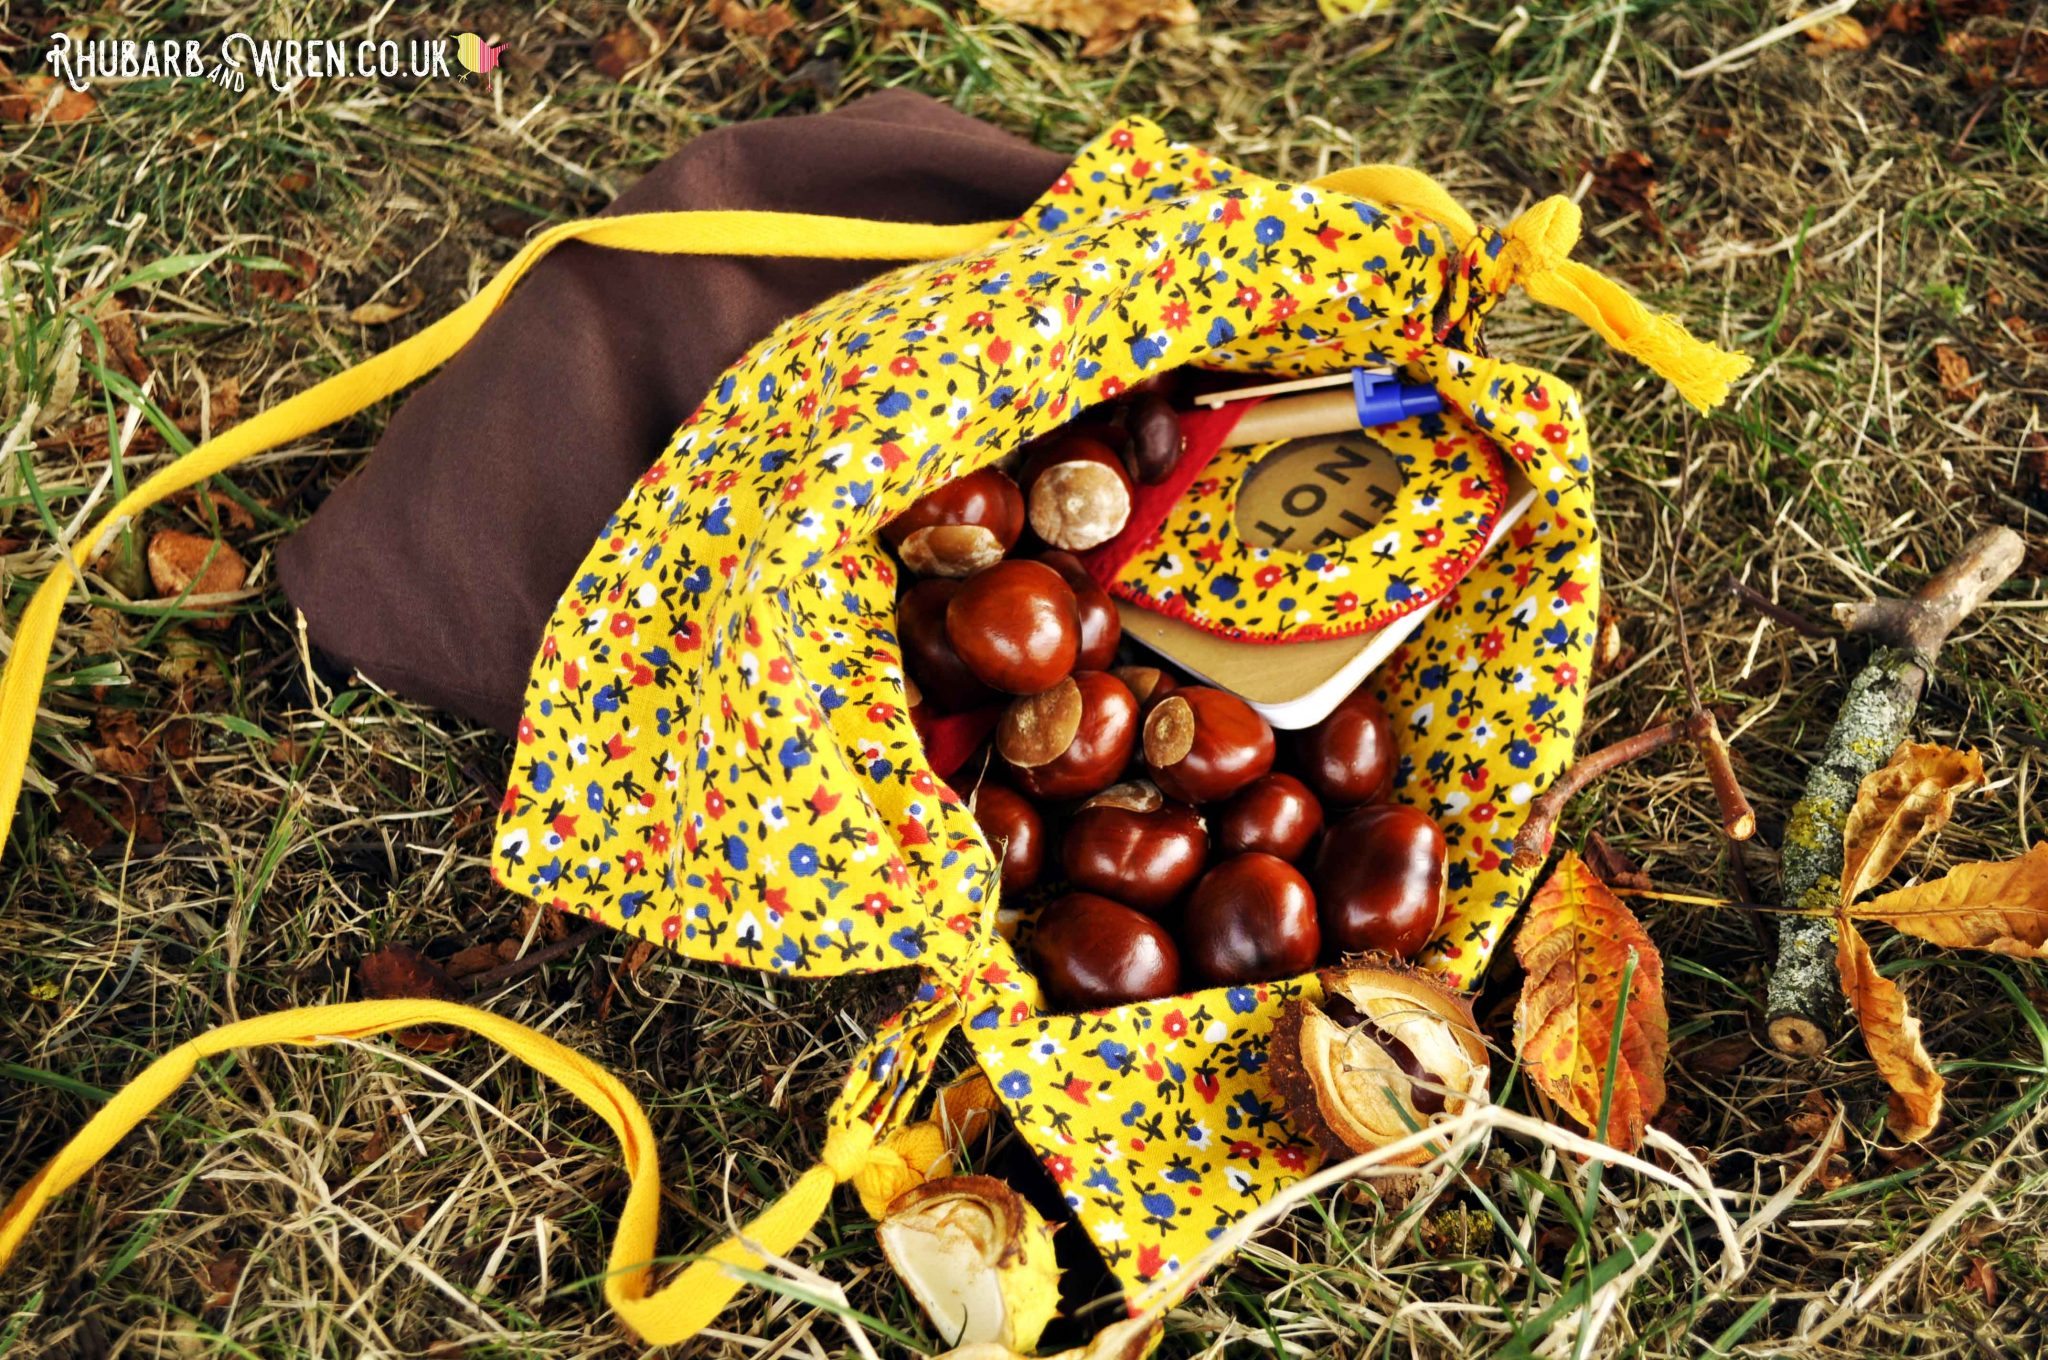 homemade diy nature explorer bag for kids, filled with conkers.